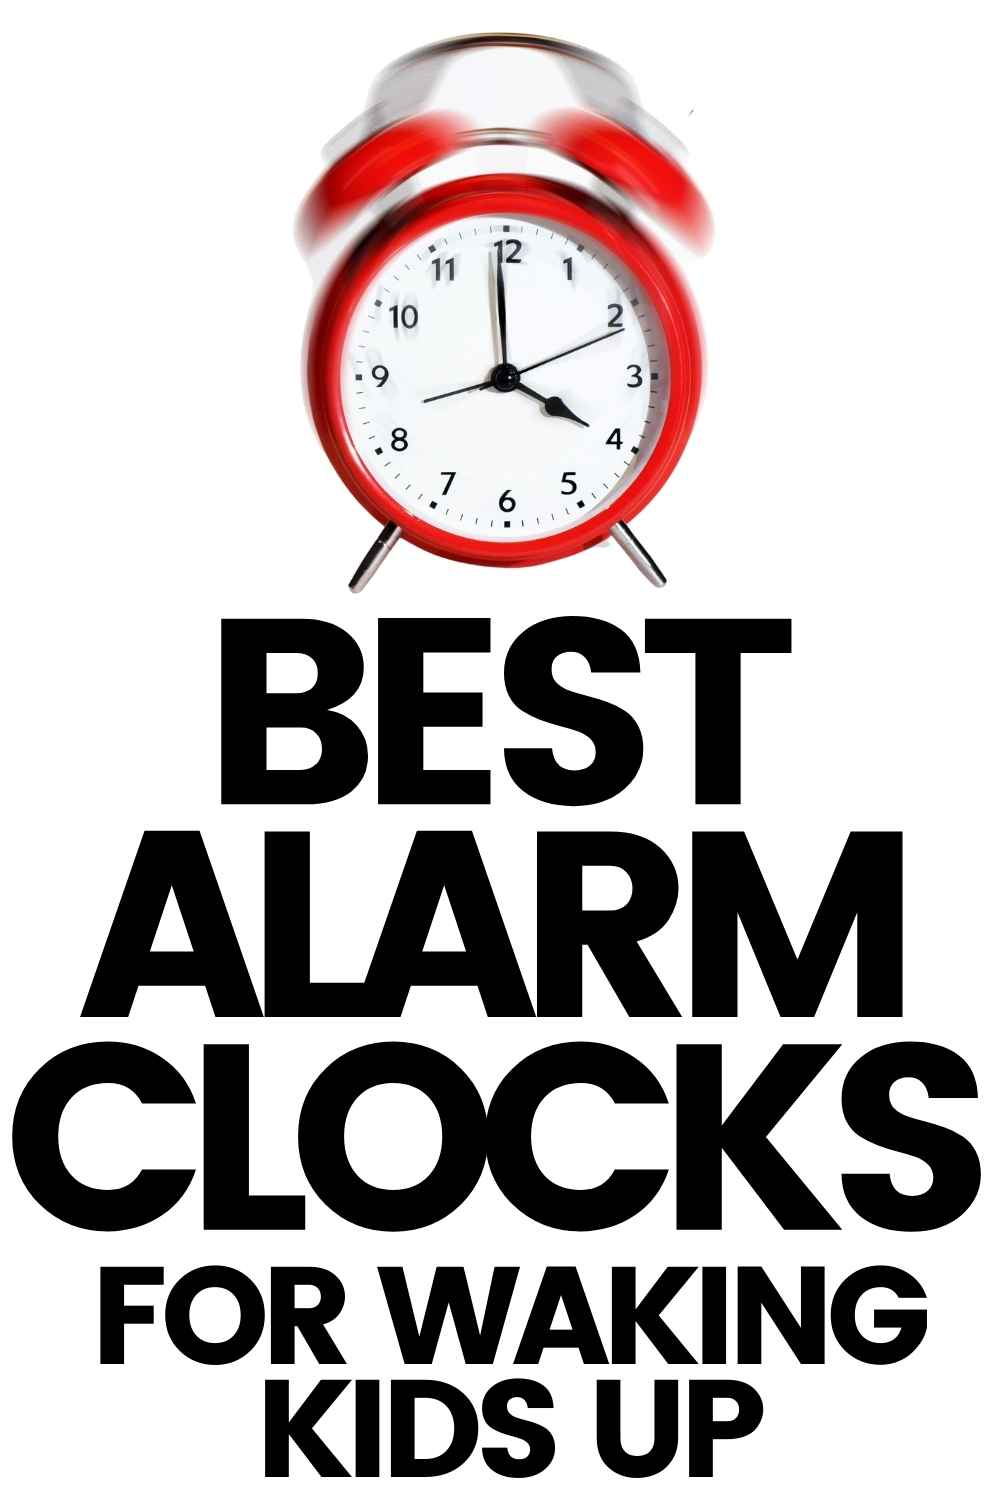 Best alarm clocks for waking kids up in the morning